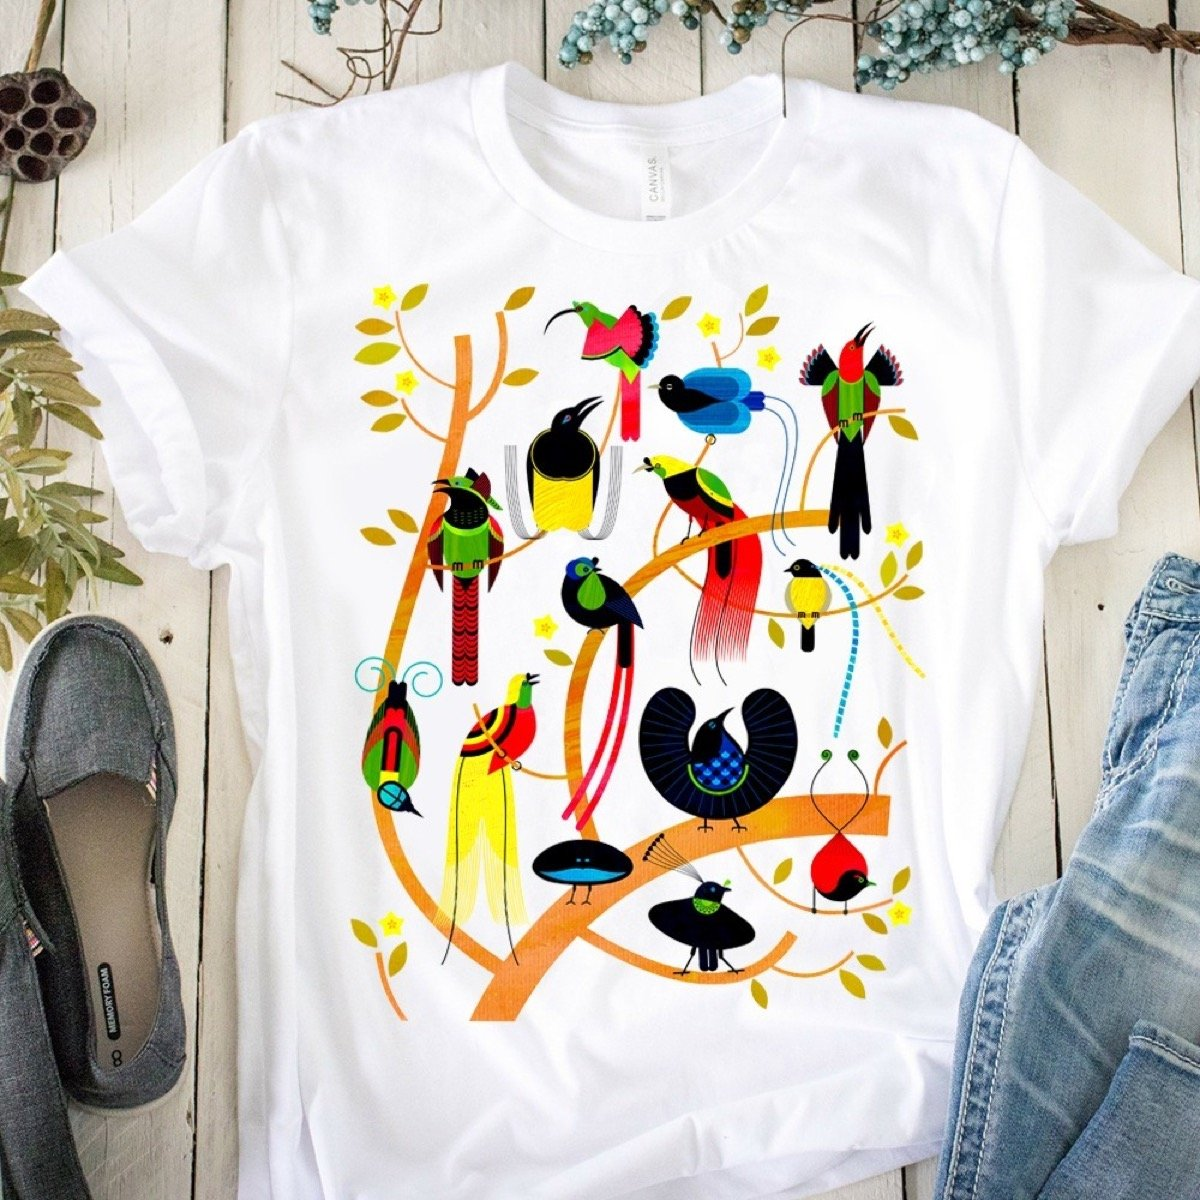 Free as a Bird T-shirt 25